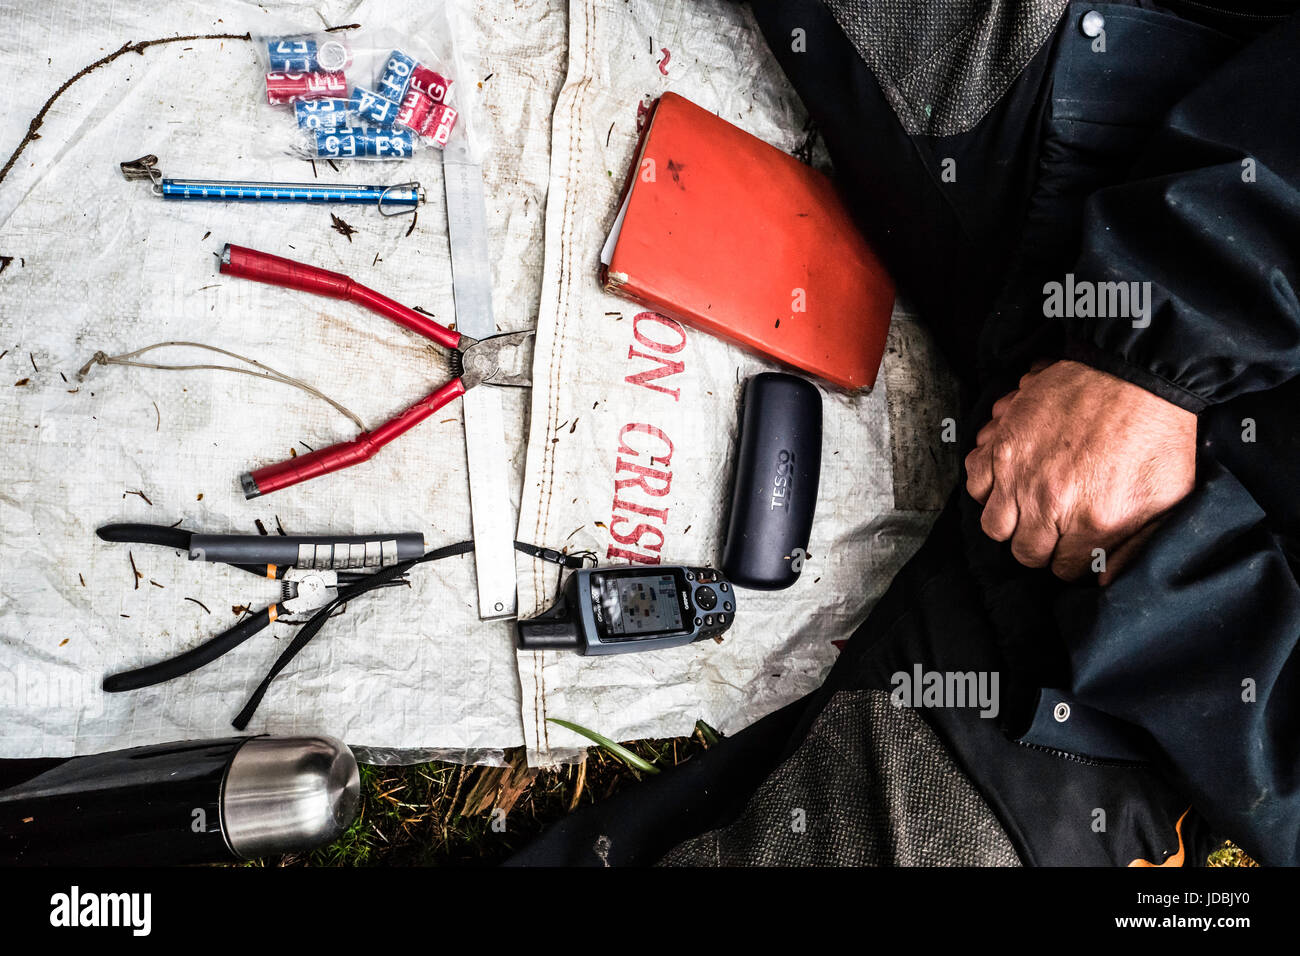 Hawick, Scottish Borders, UK. 16th June 2017. Tools of the trade, a ranger sets out his kit ready to ring Goshawk - Stock Image